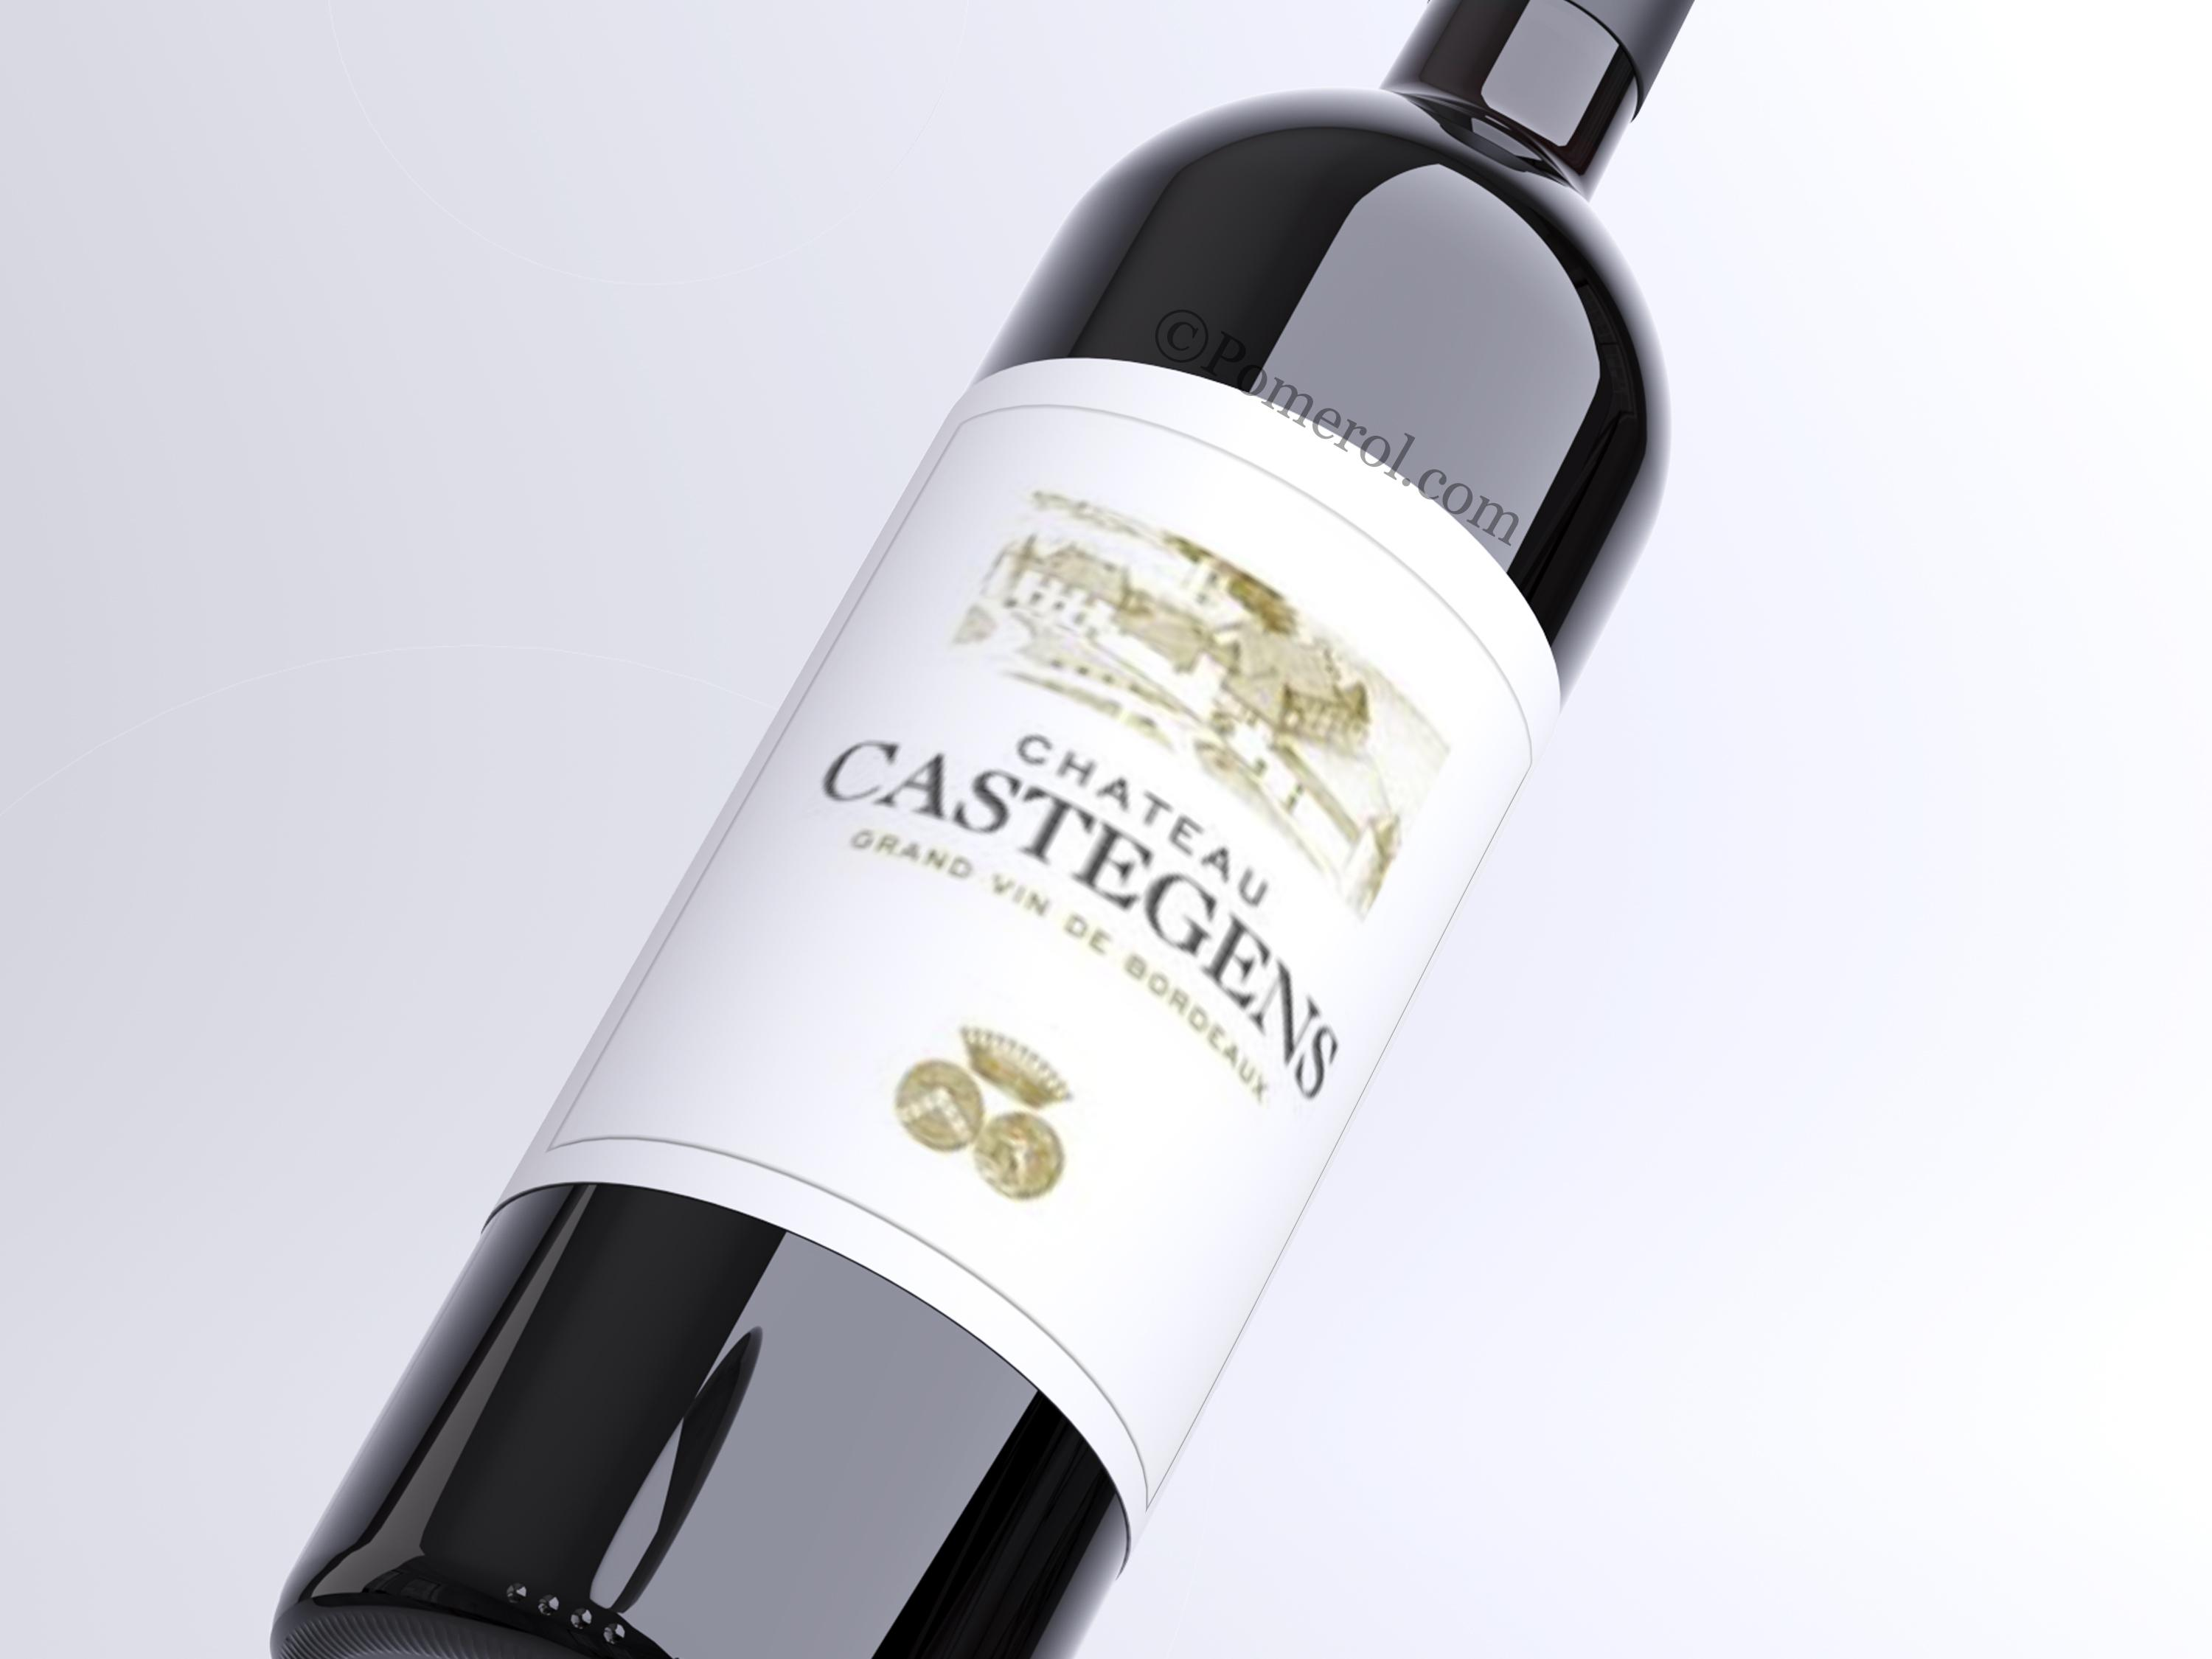 Image result for chateau castegens 2016